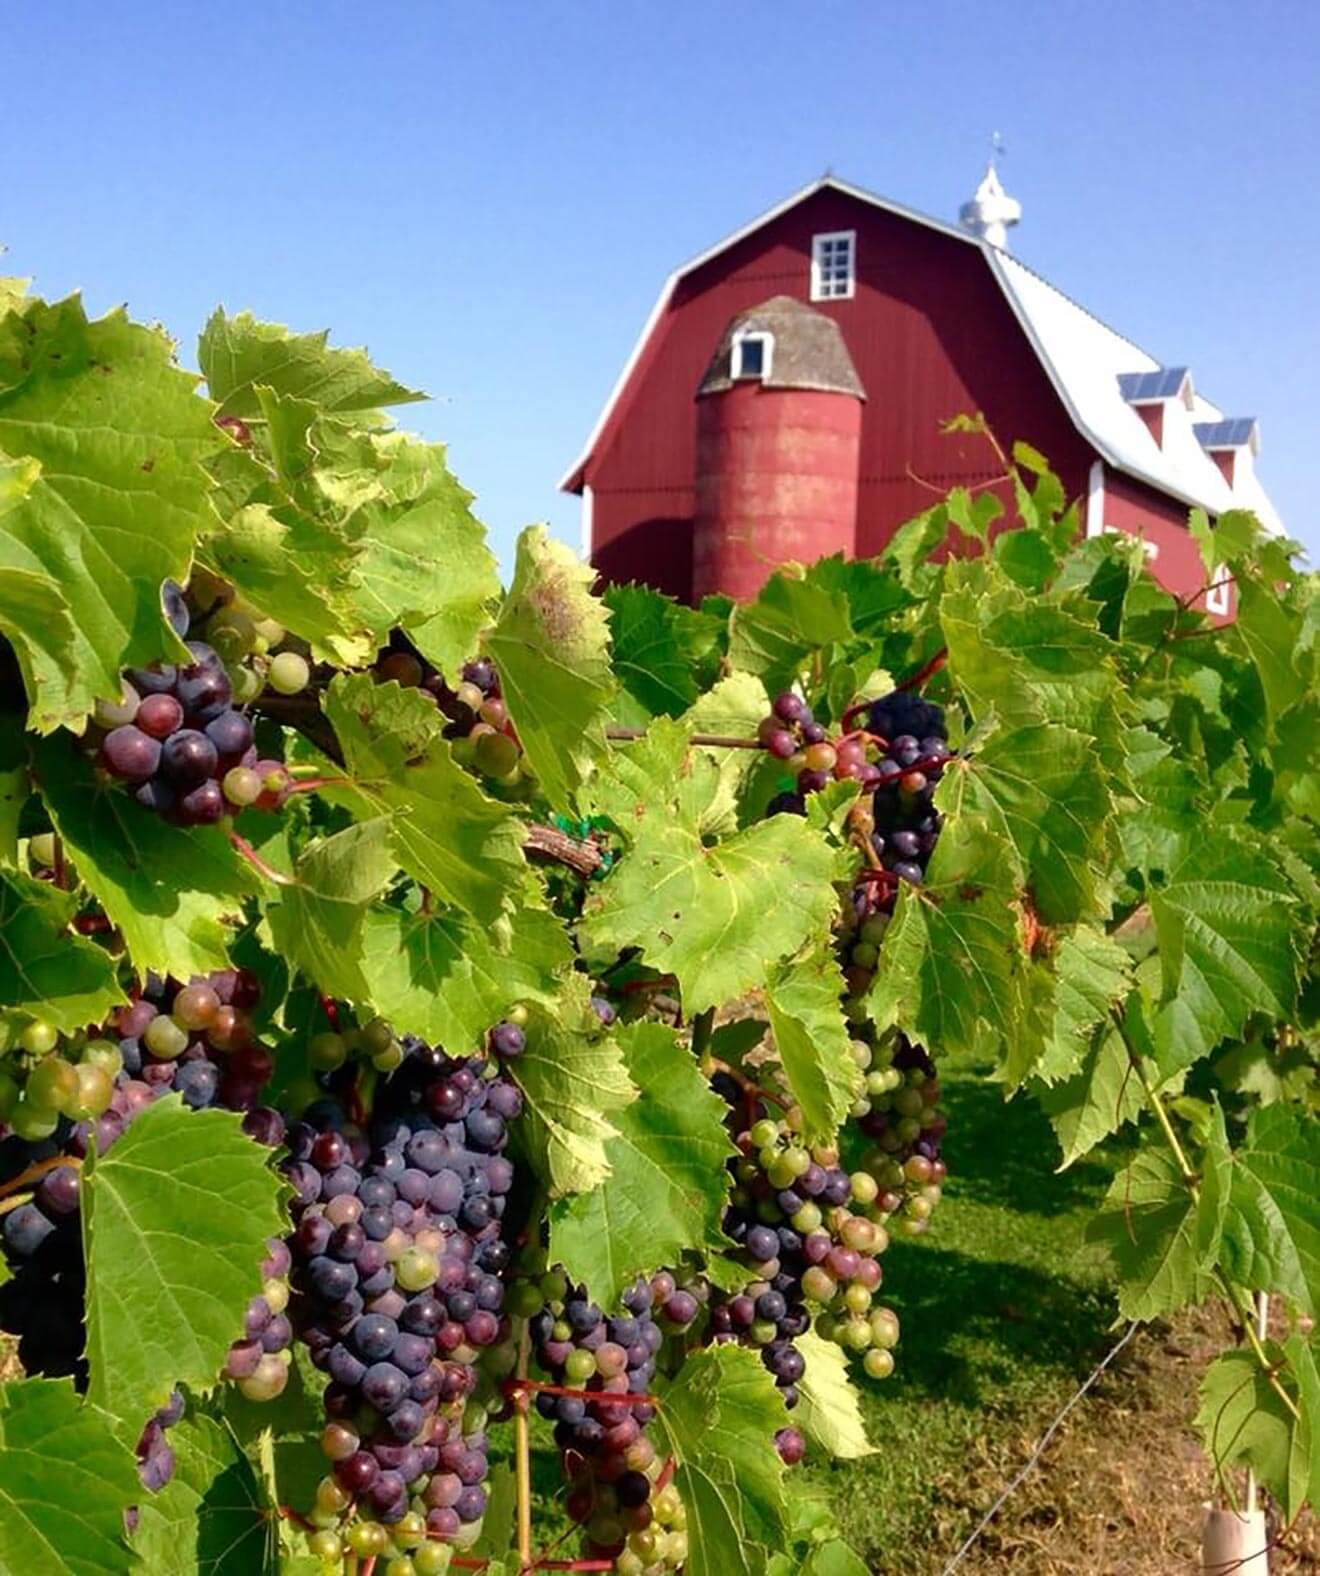 Lautenbach's Orchard Country Winery, vineyard and barn view